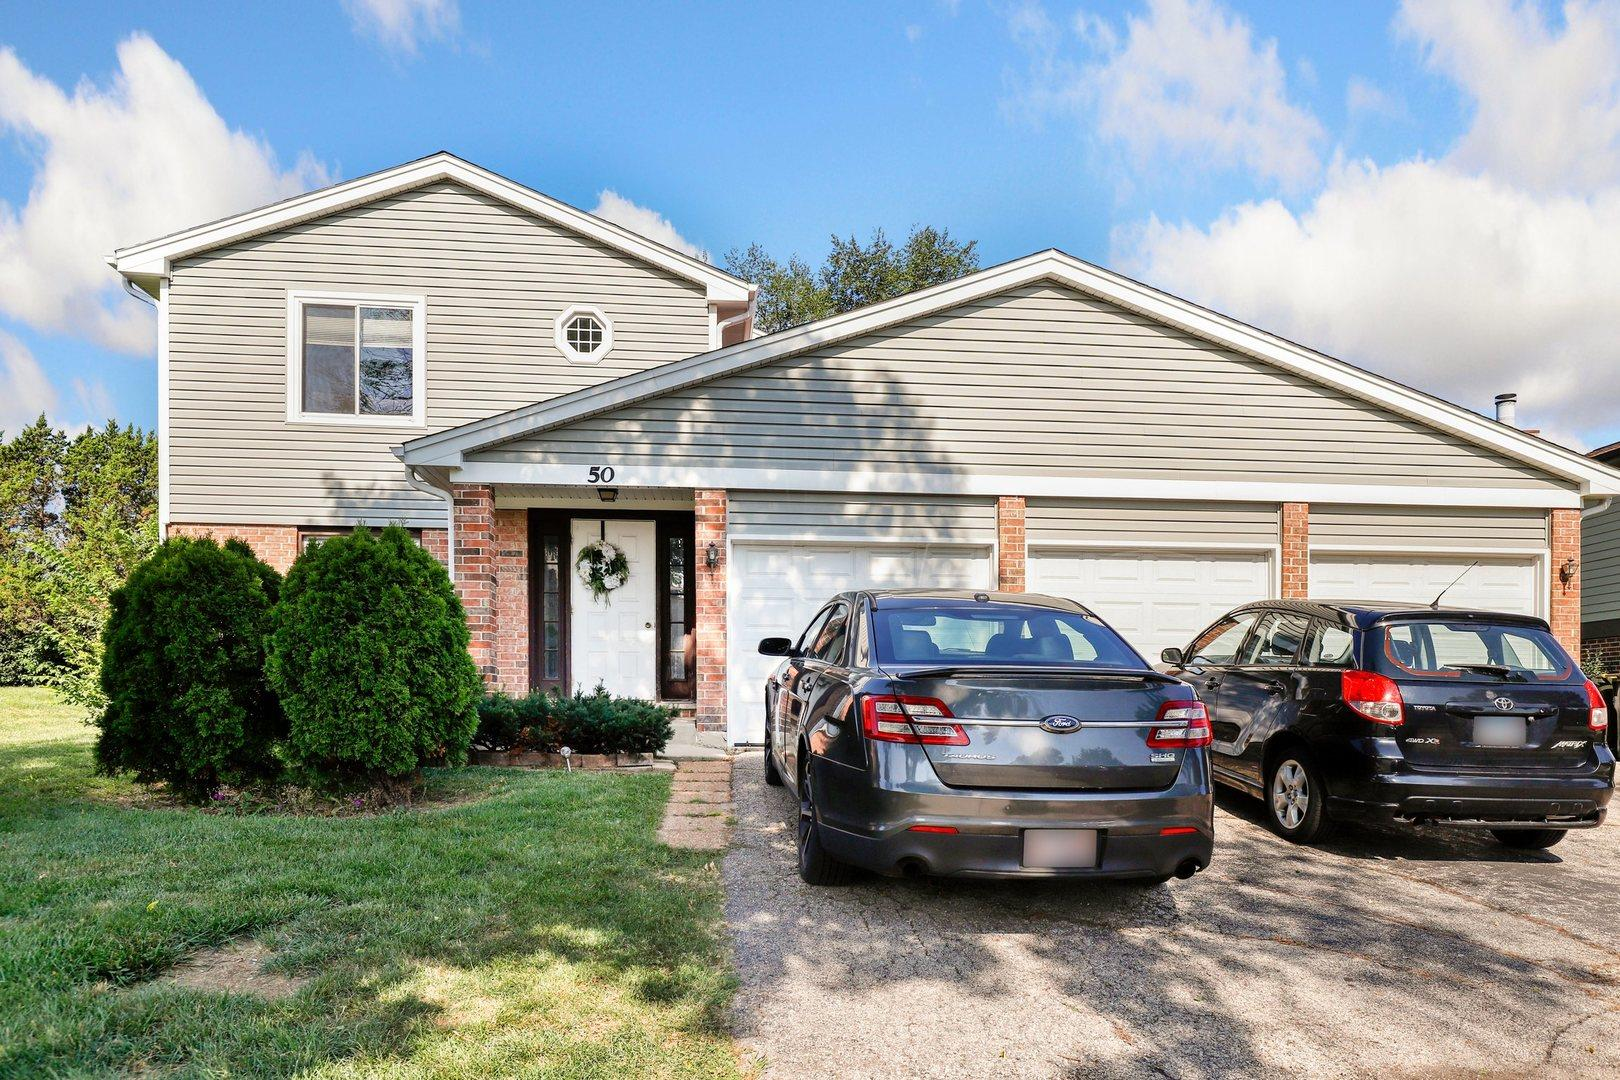 50 Terry Drive #B, Roselle, IL 60172 - #: 11176440